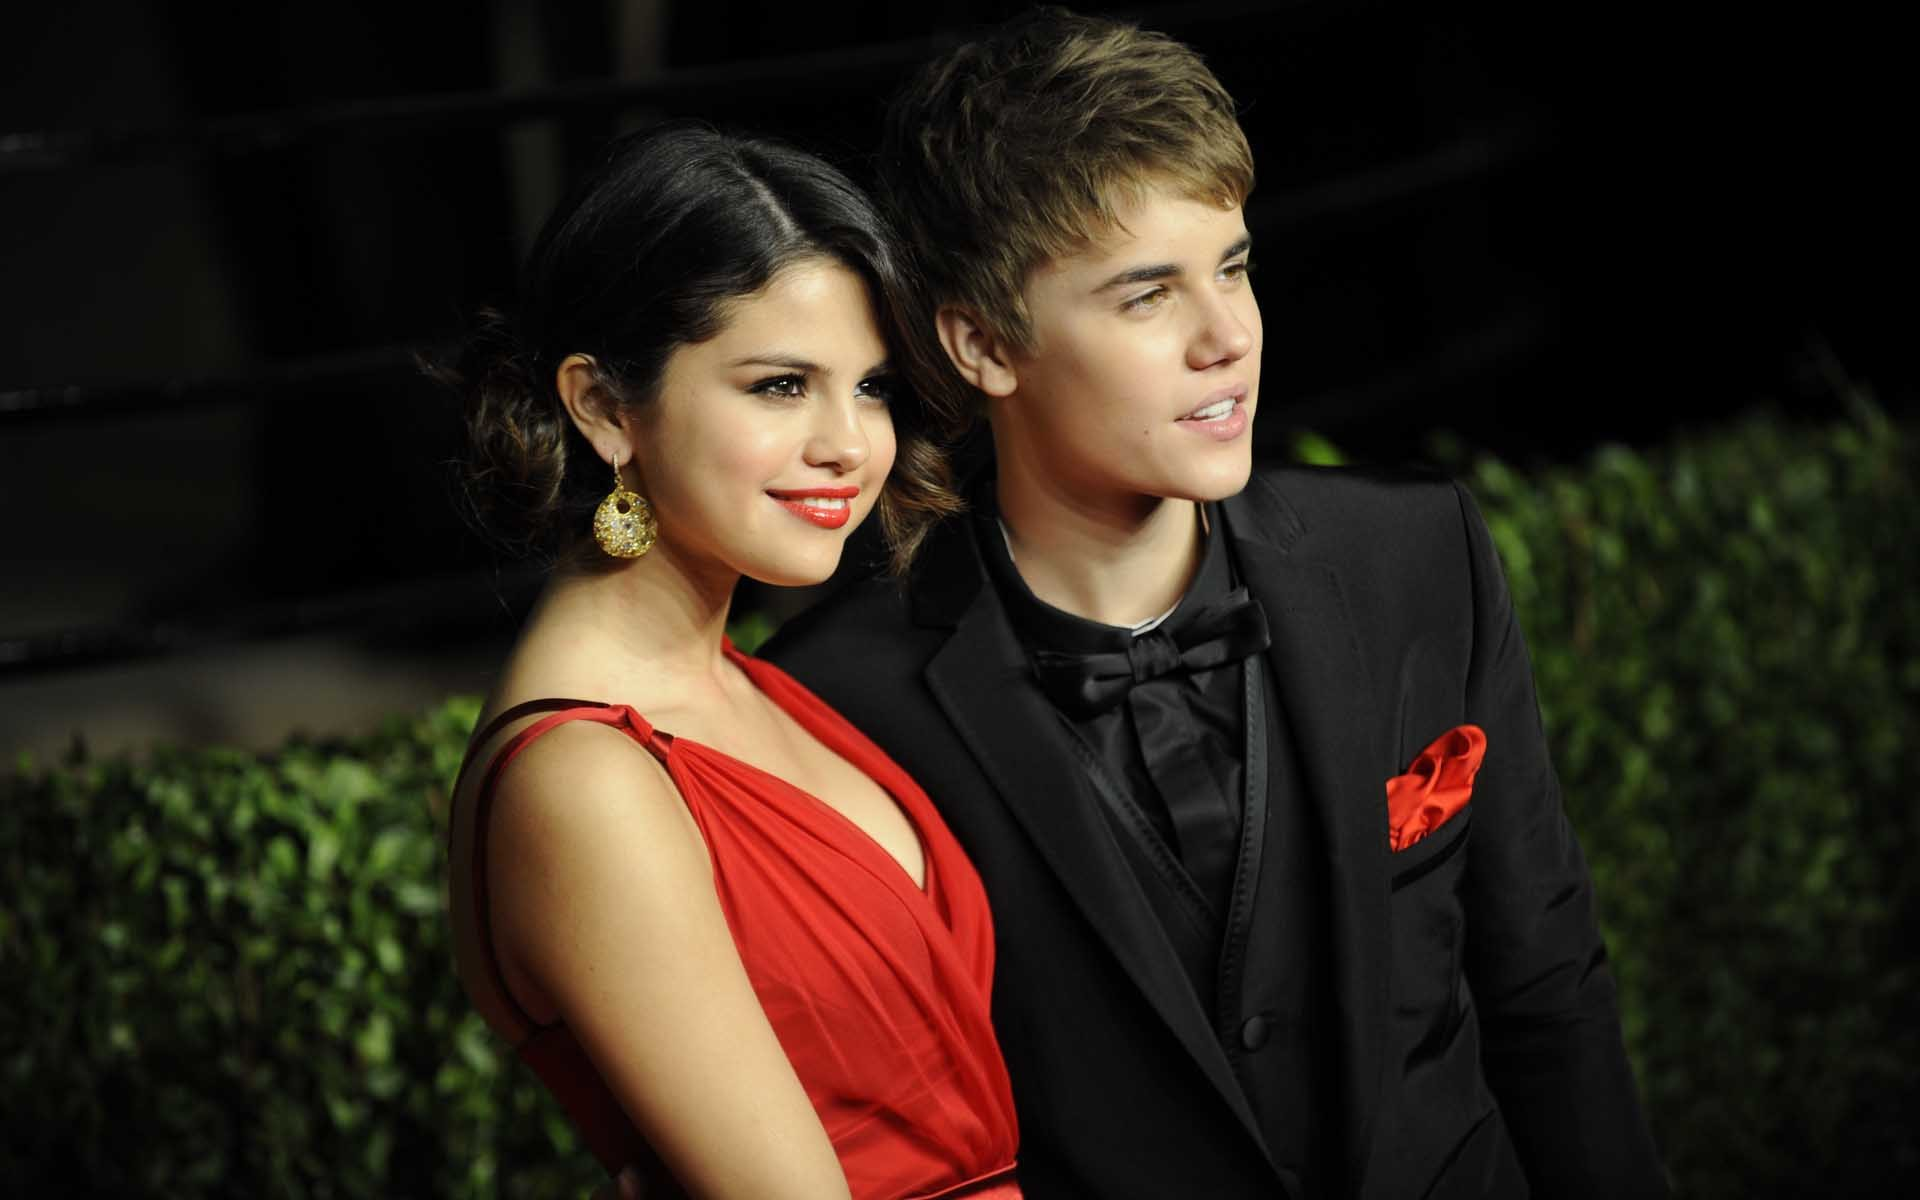 1920x1200 Lost Love photos of Justin Bieber and Selena Gomez so Cute